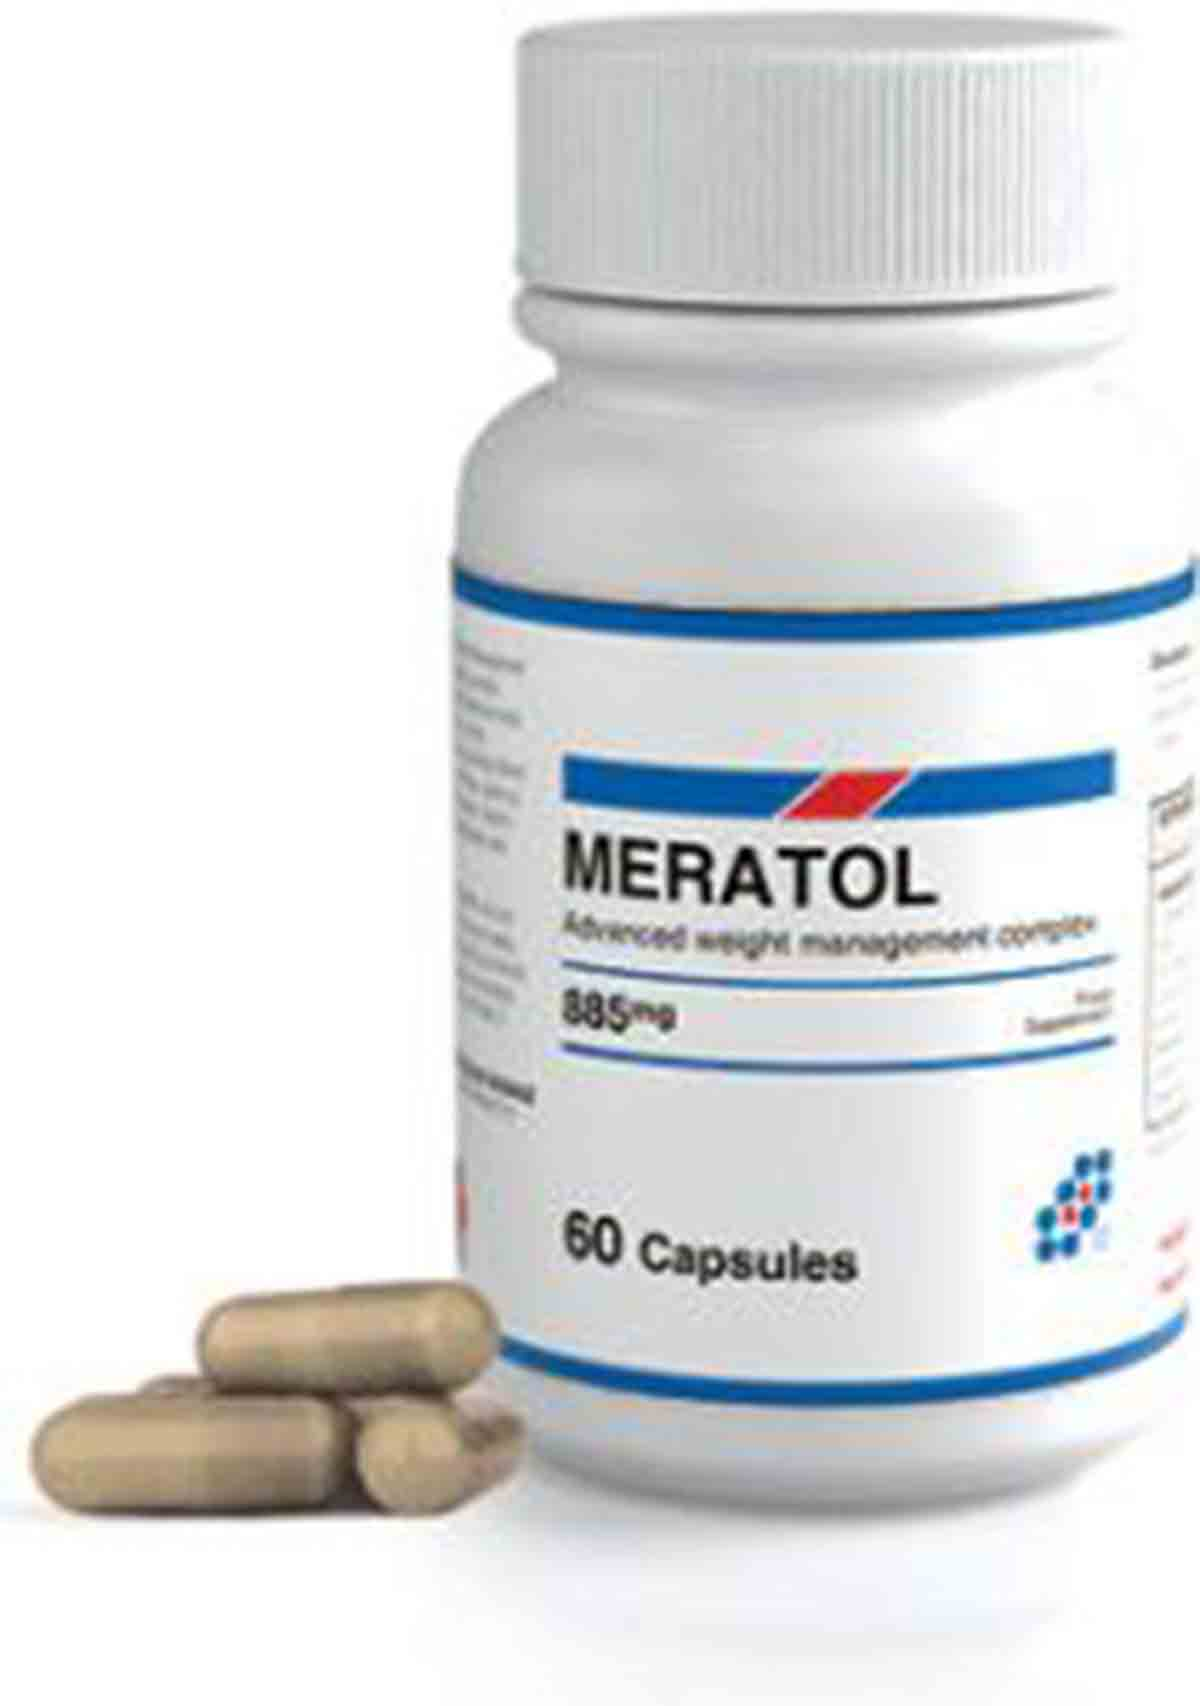 Meratol Bottle